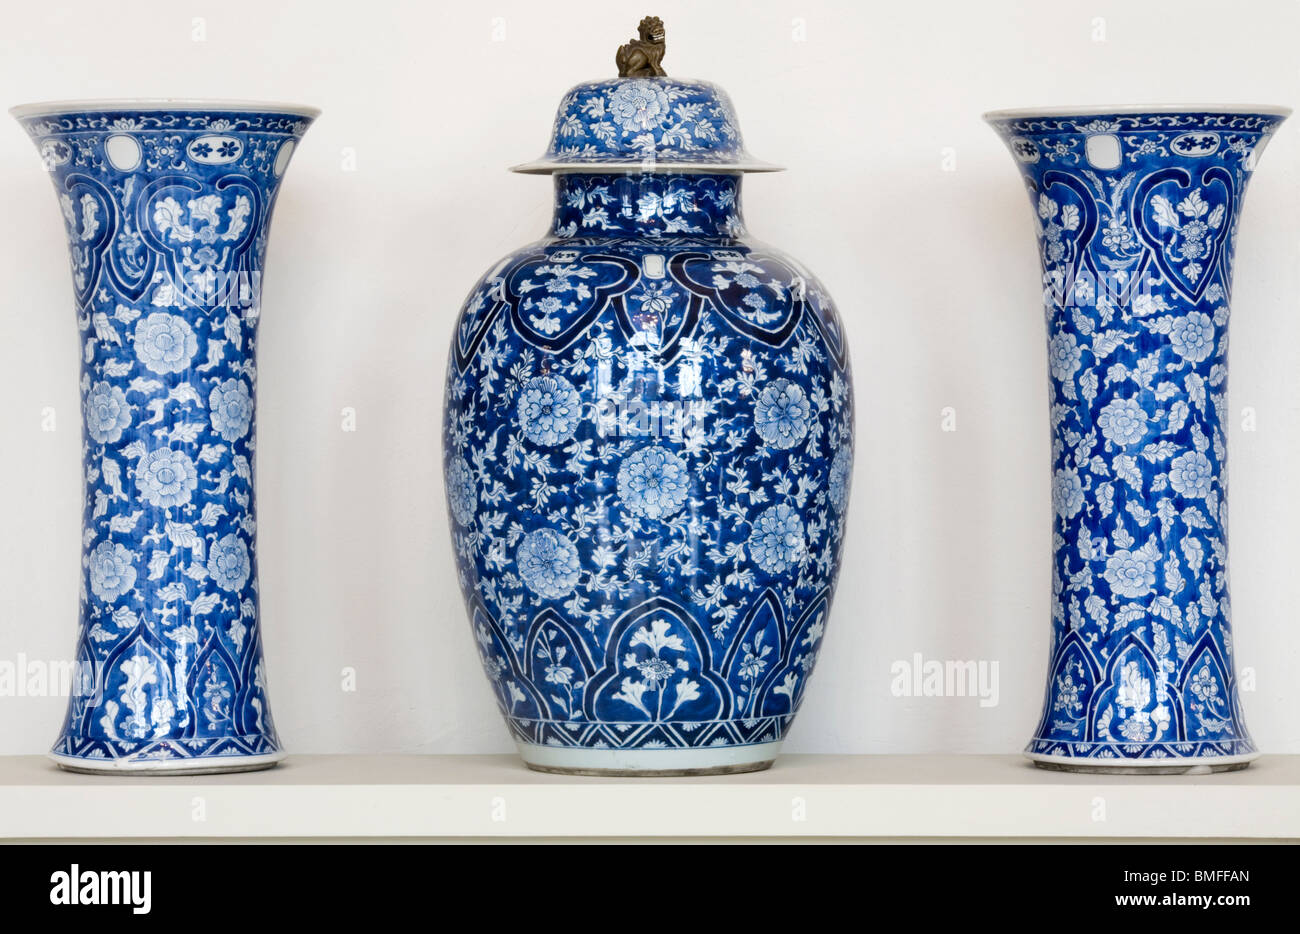 Chinese porcelain with blue and white glaze of kangxi period stock chinese porcelain with blue and white glaze of kangxi period 1662 1722 porcelain museum art collection dresden germany floridaeventfo Images